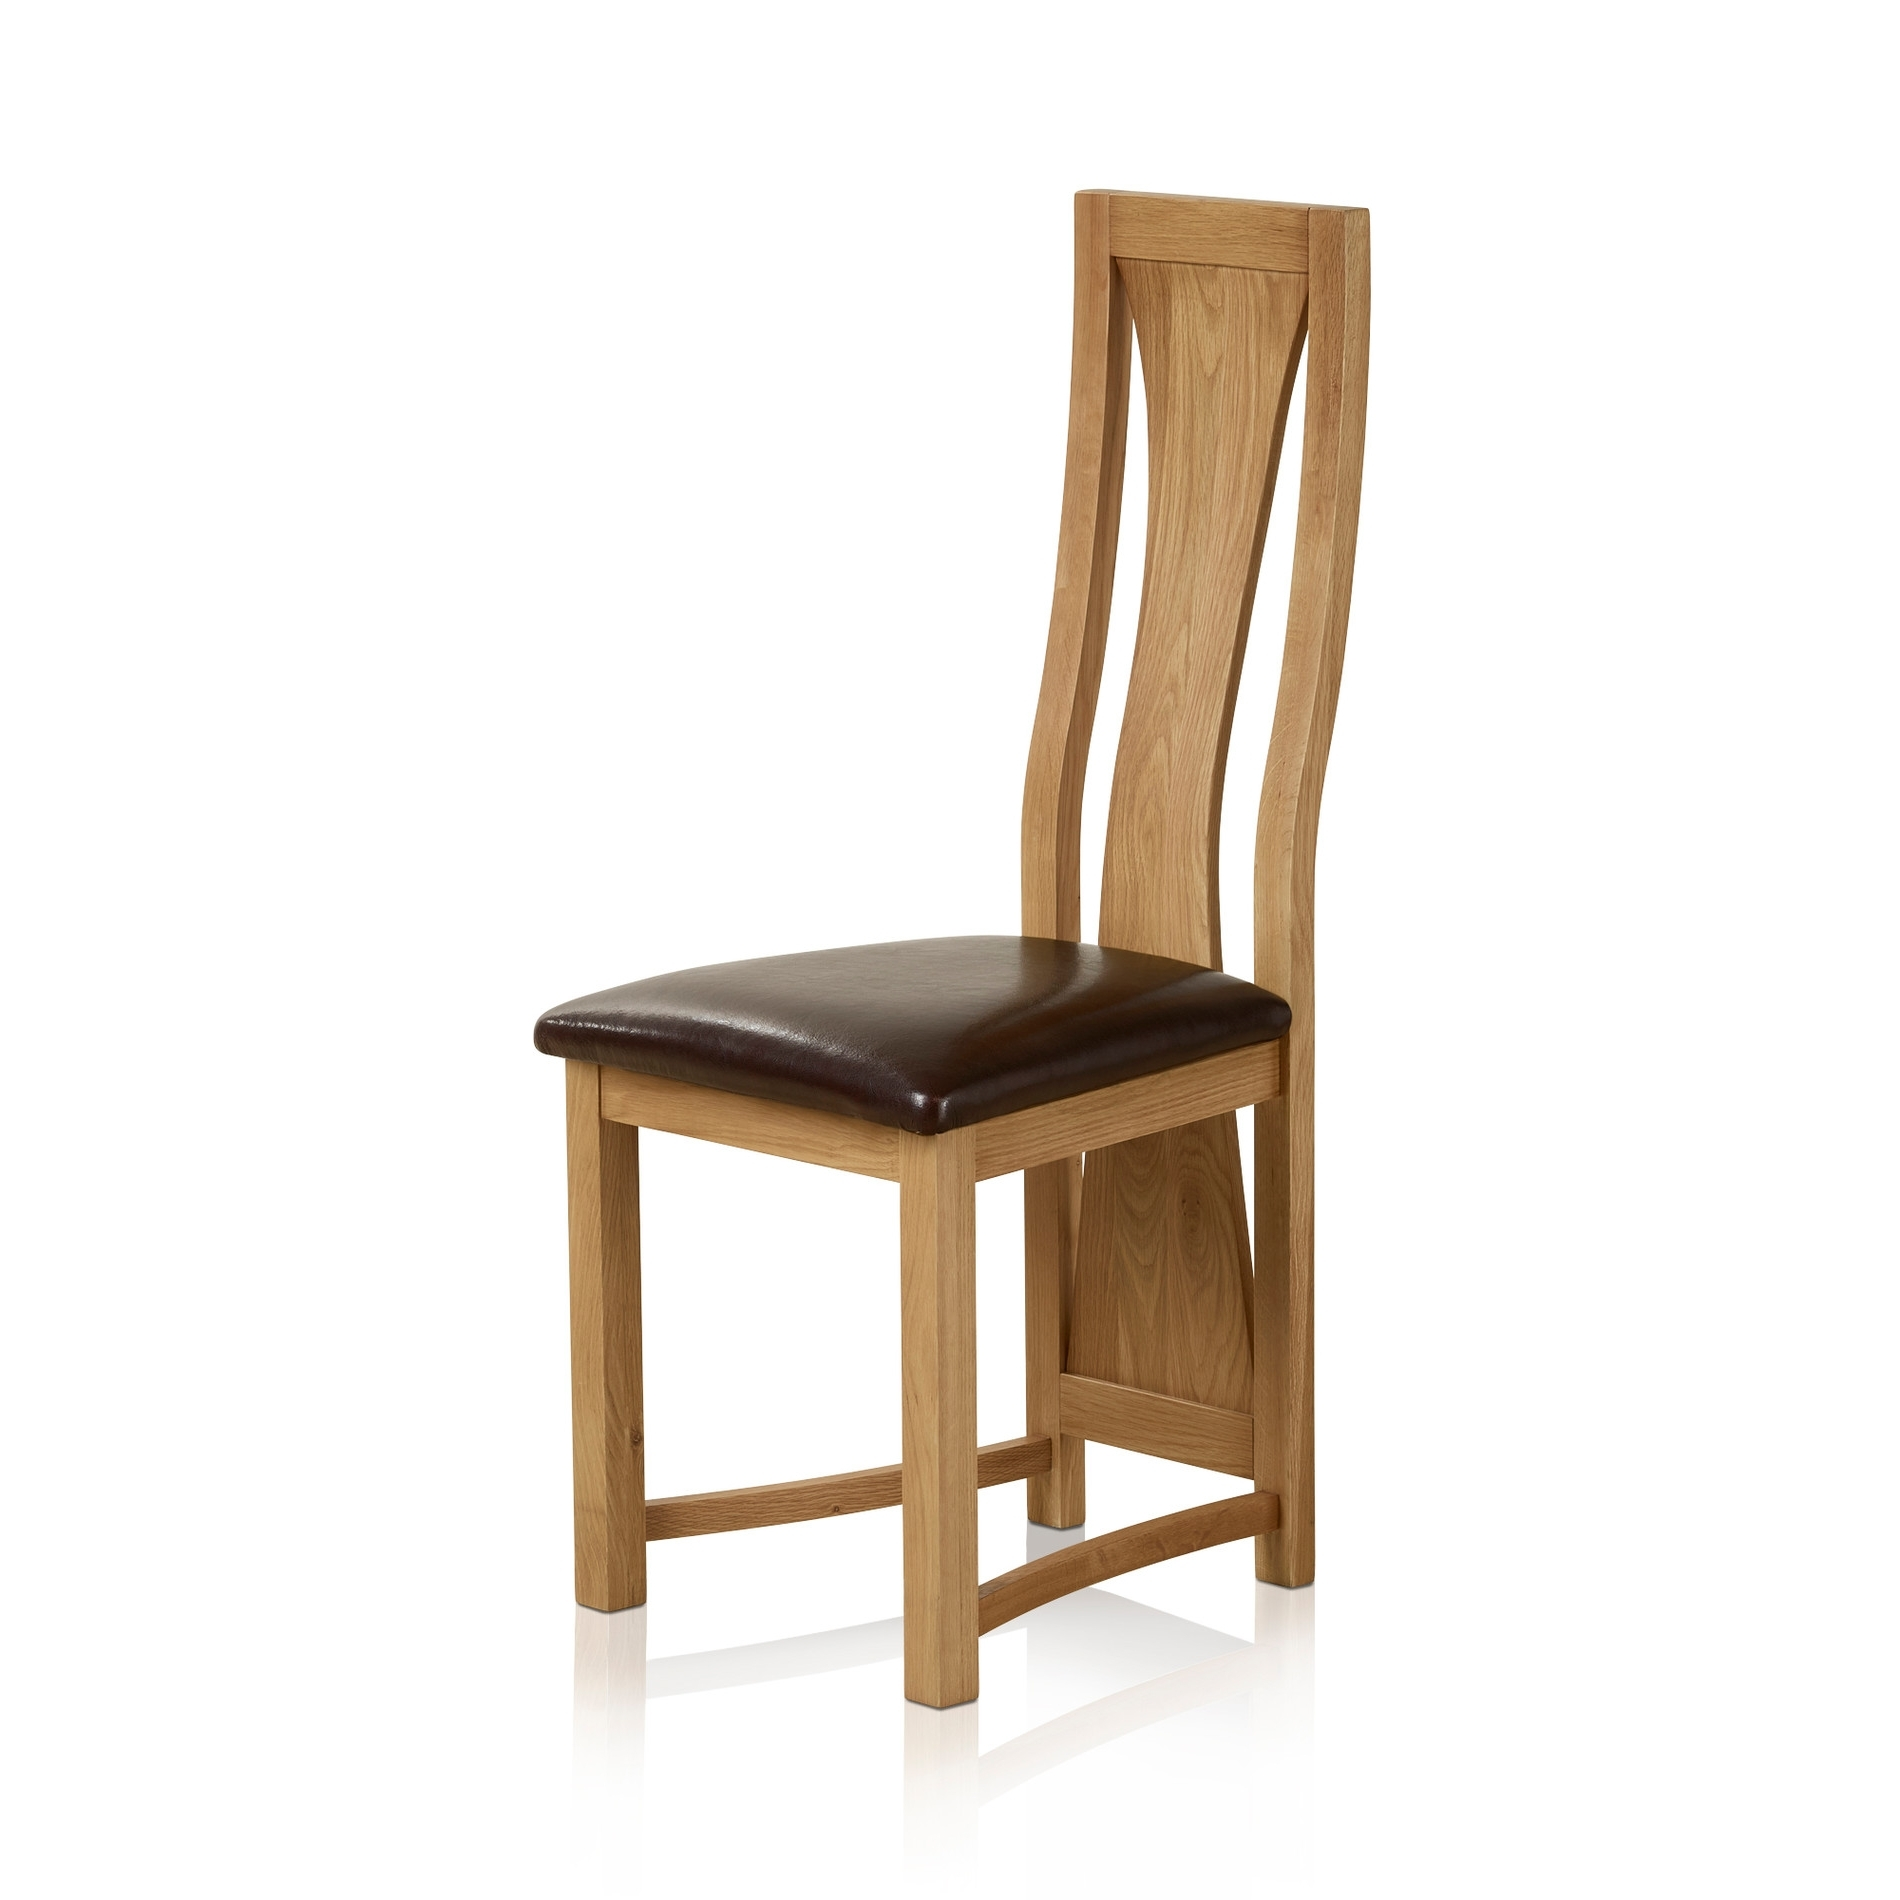 Real Leather Dining Chairs For Well Liked Waterfall Dining Chair In Natural Oak (View 17 of 25)